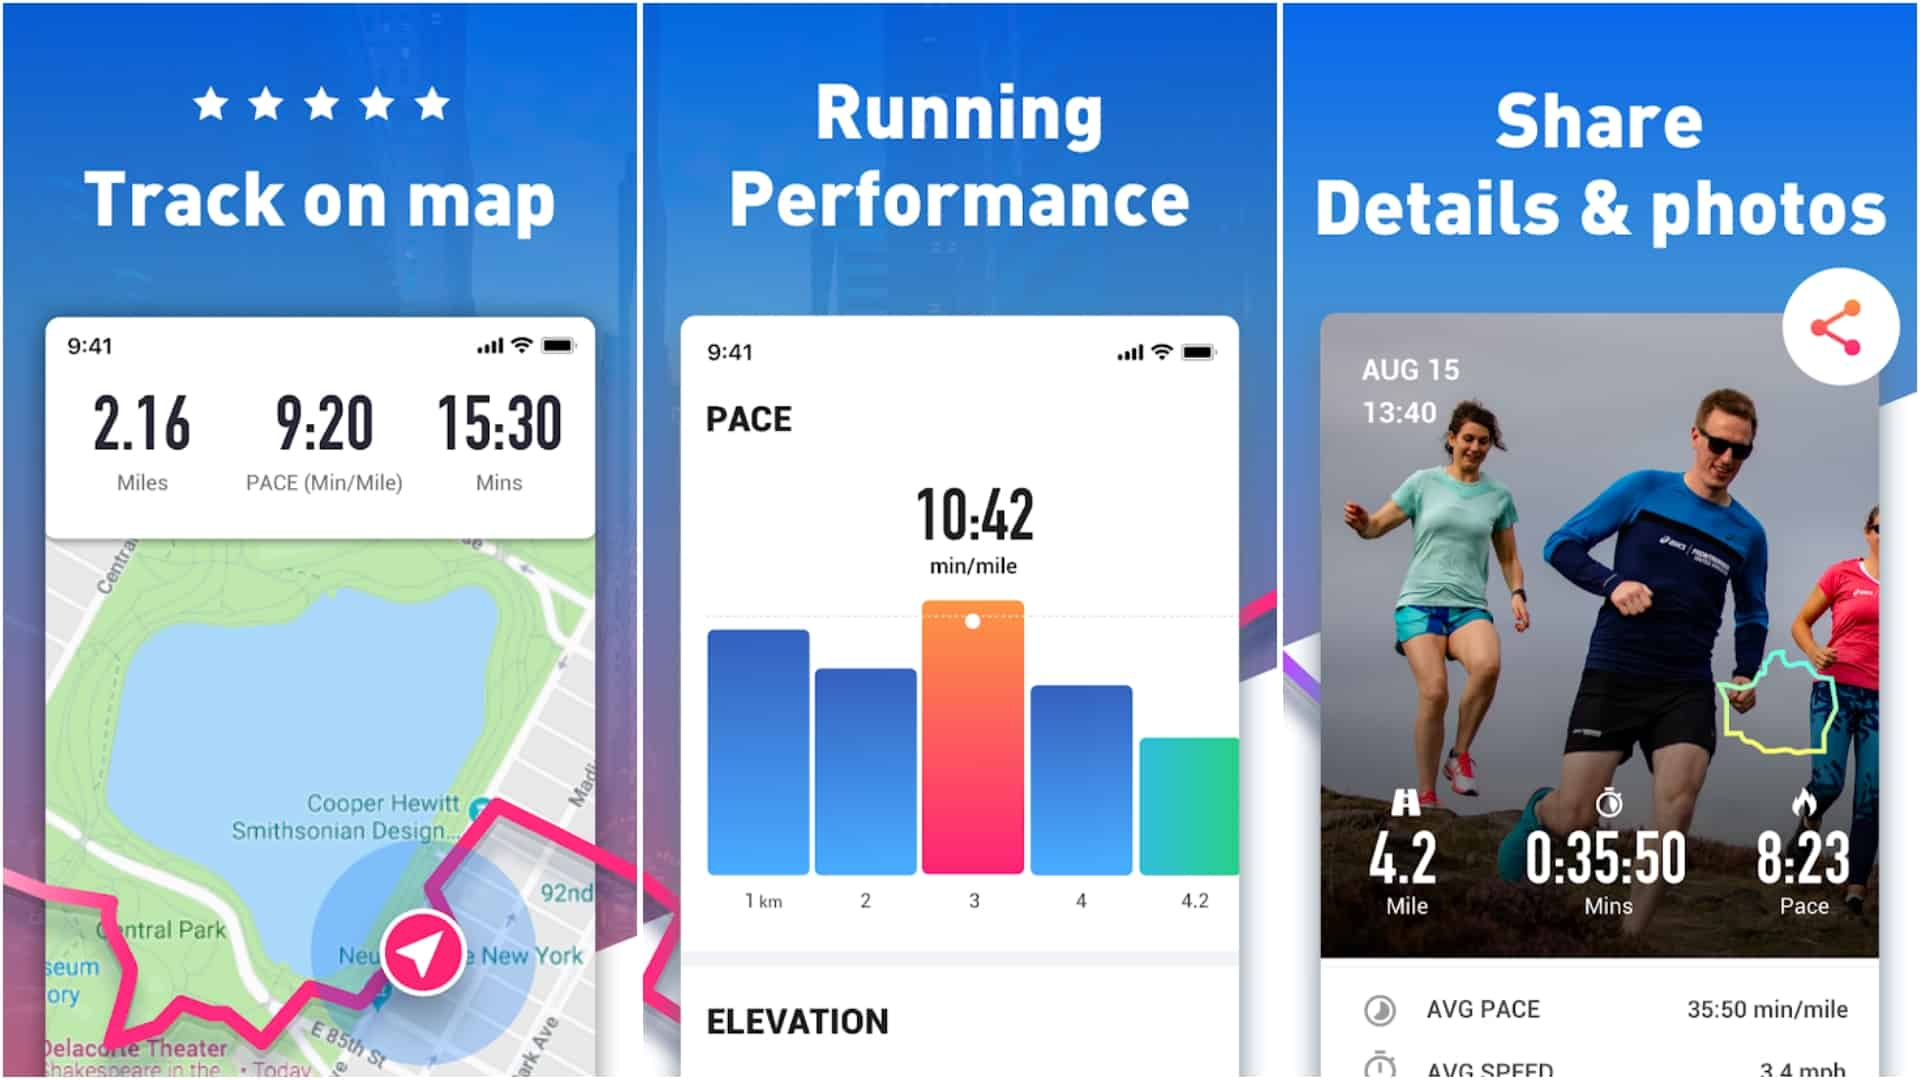 Running App app image March 2020